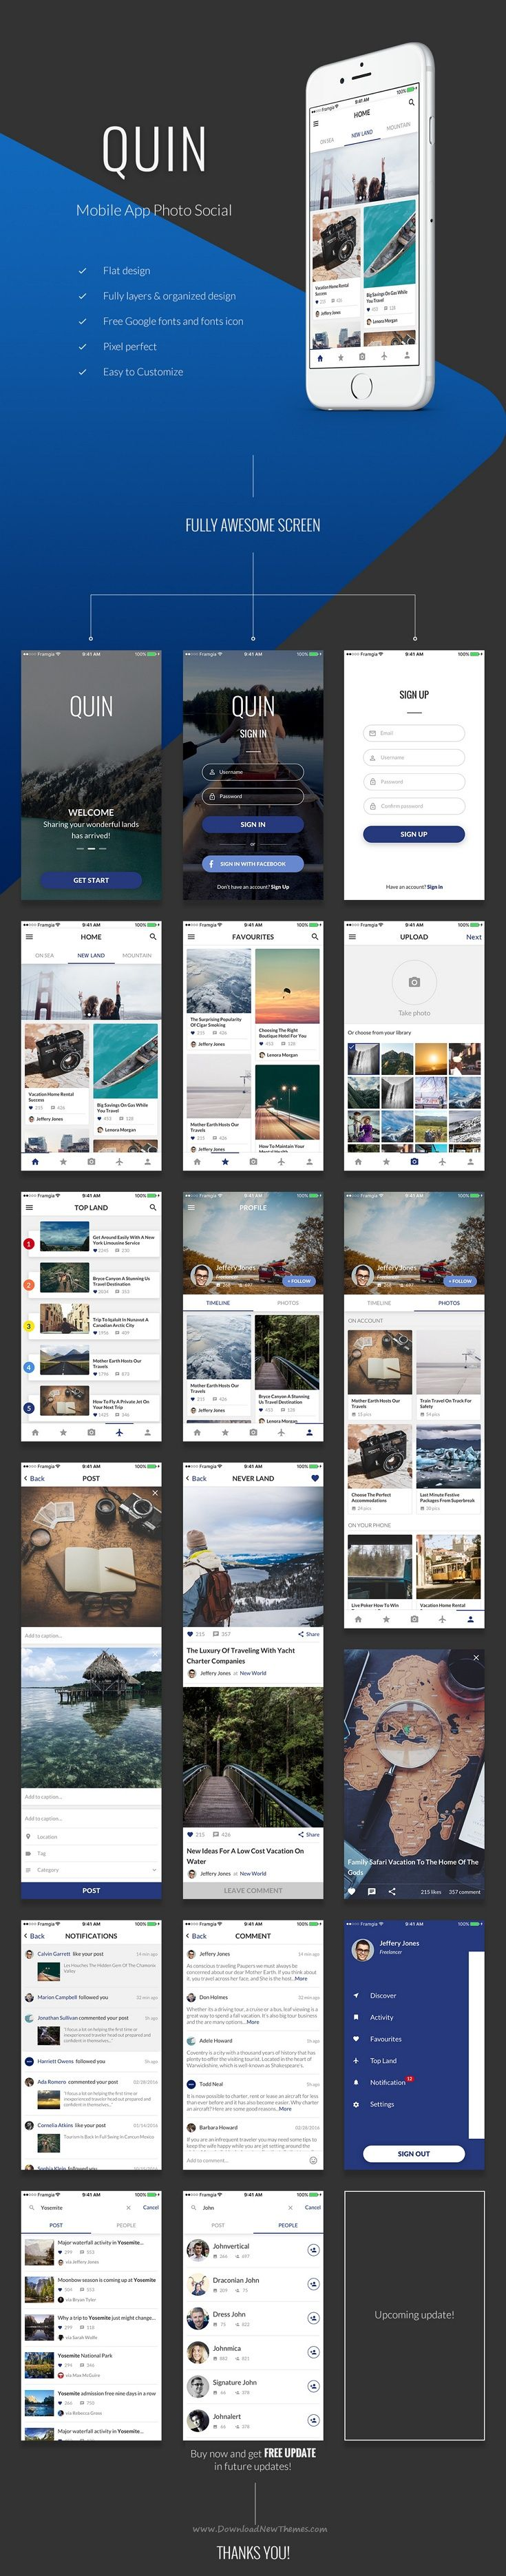 Quin is mobile #app to share your best photos to social friends. #ui #sketchtemplate